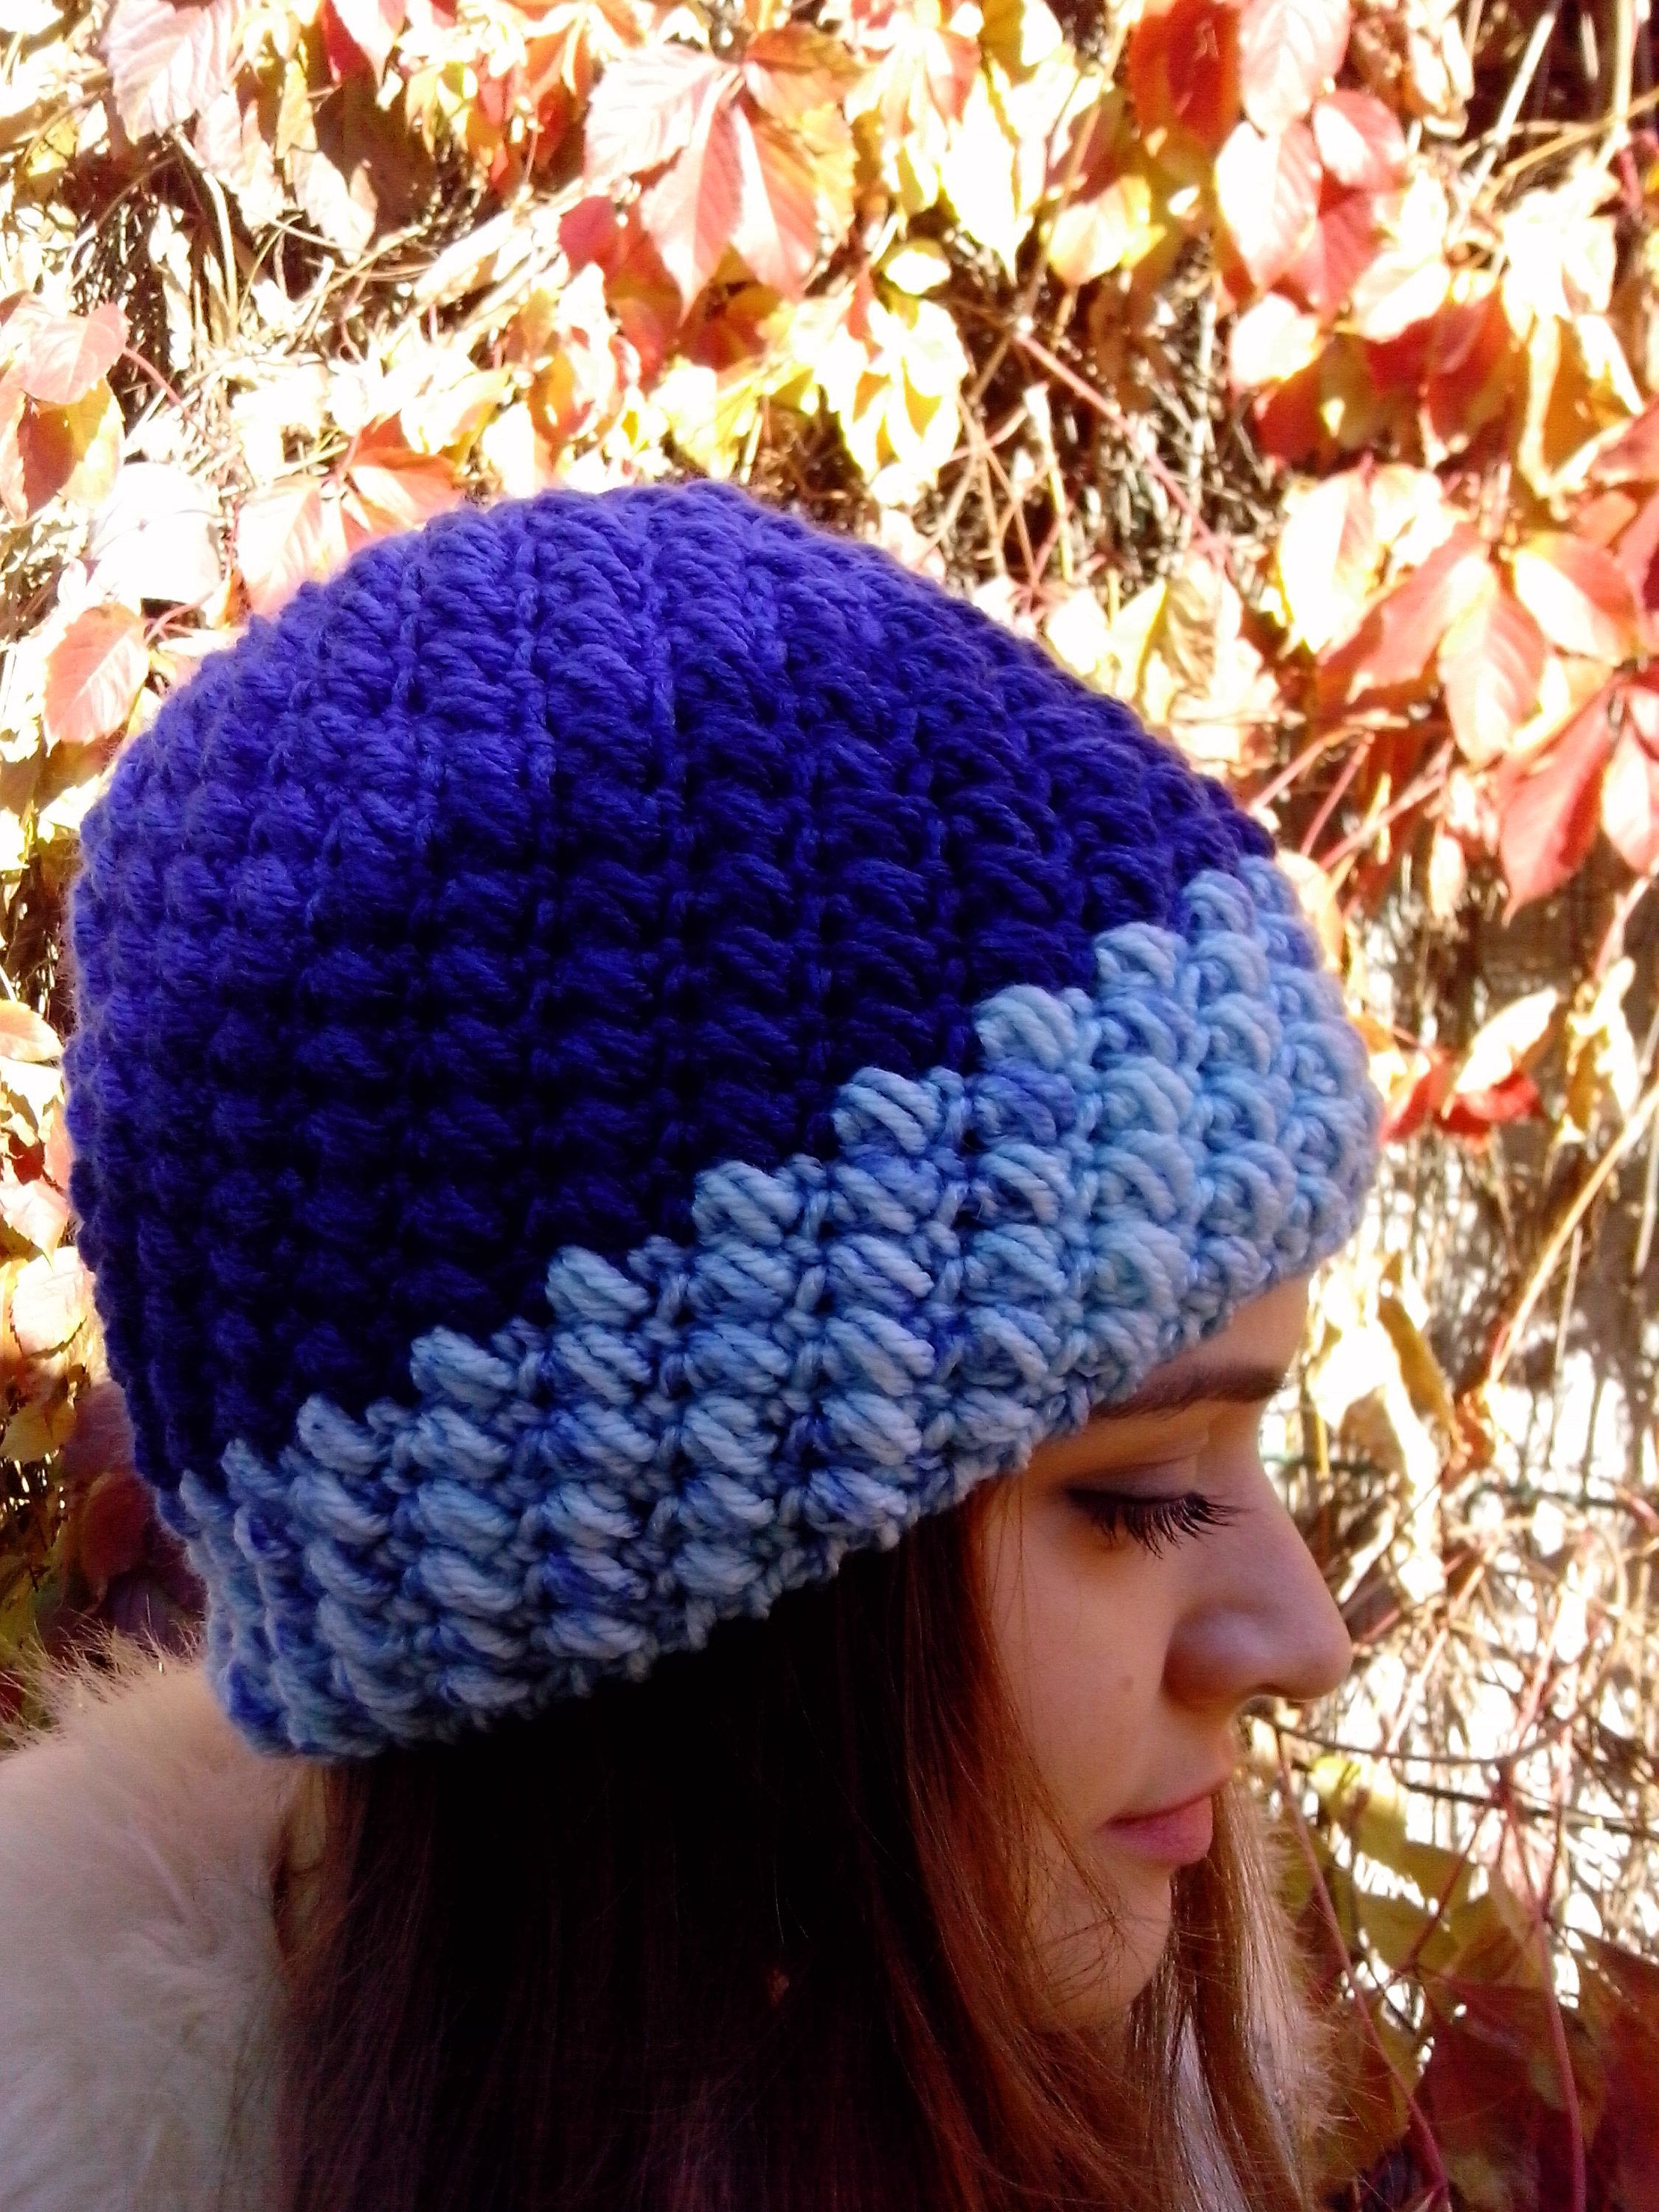 544bc90e560 Holiday Gift For Wife Christmas Knit Gift Blue Crochet Hat For Mom Winter  Knit Skull Cap